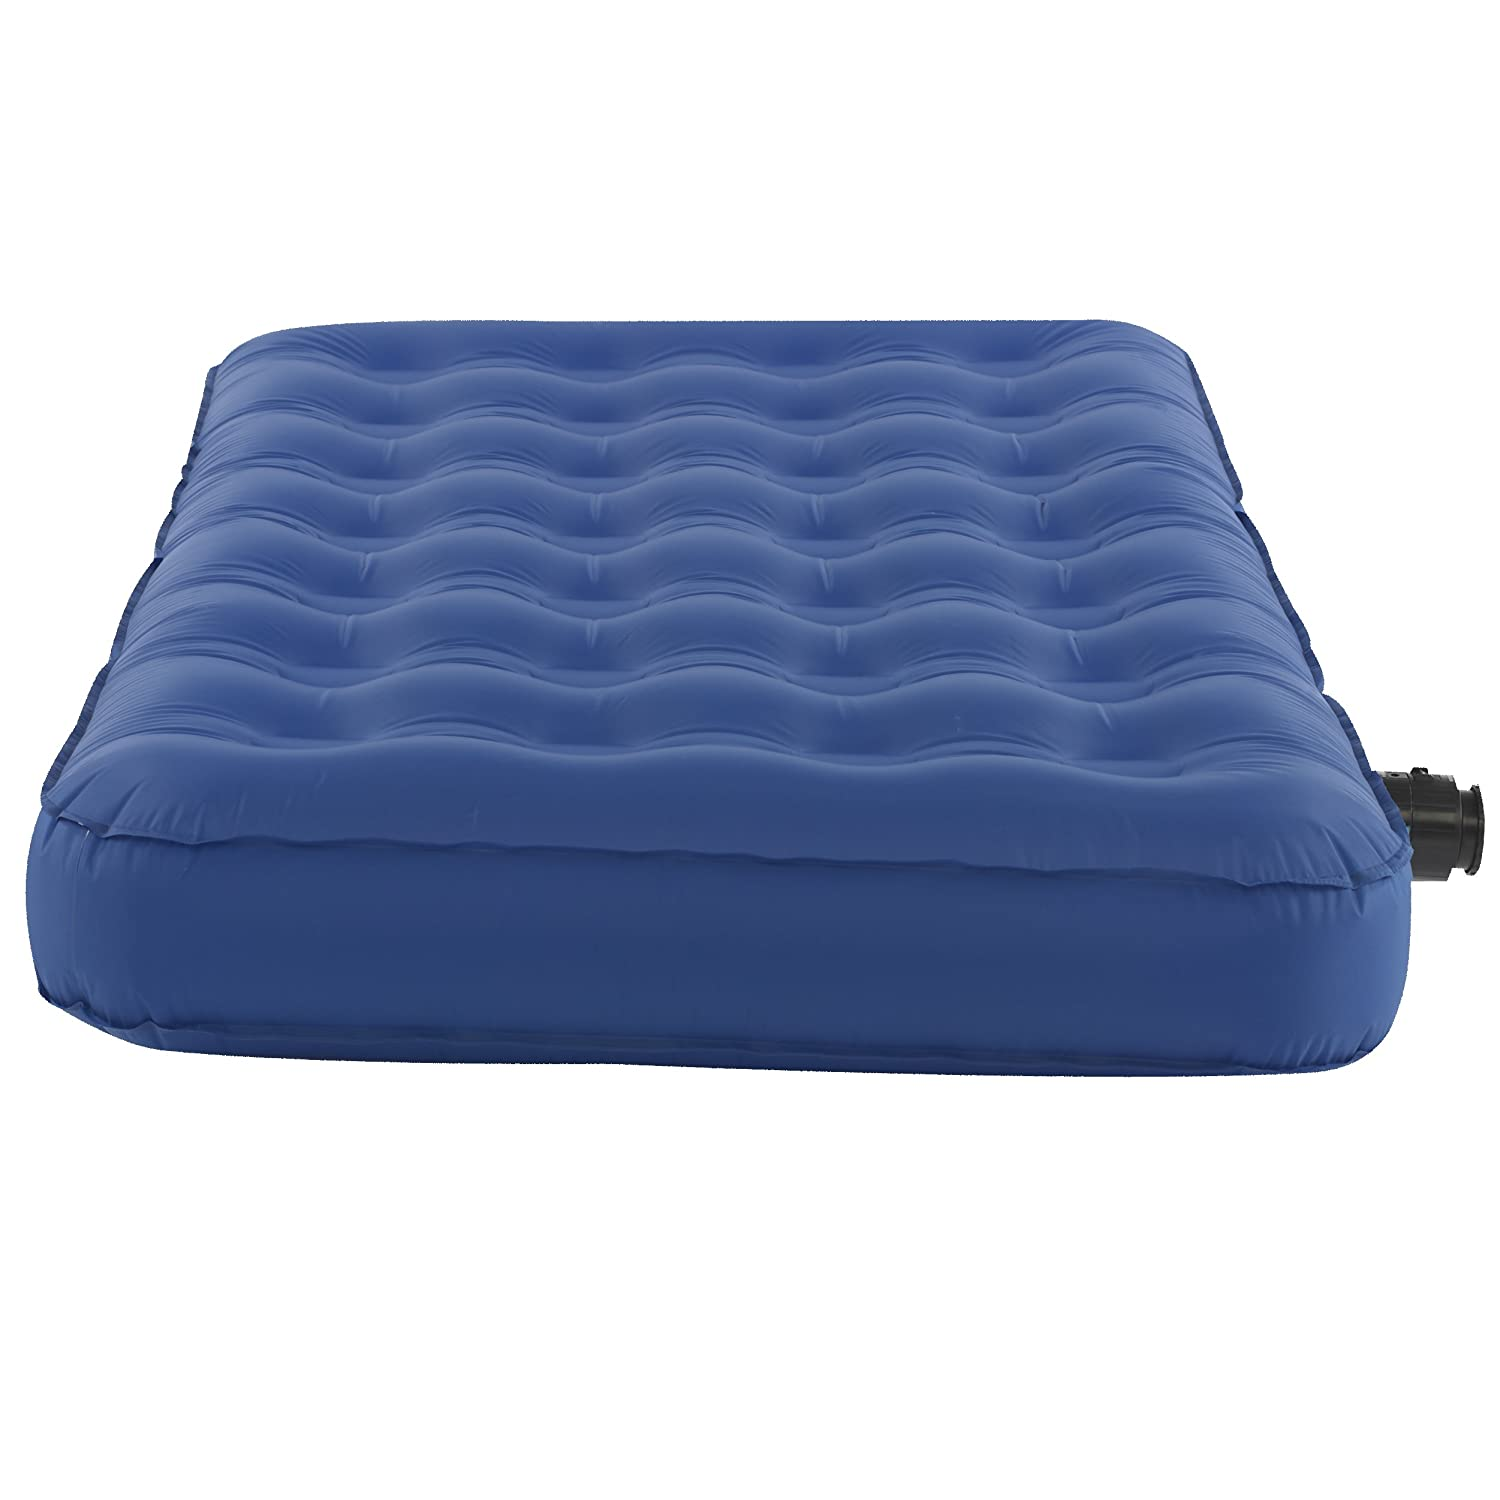 Inflatable bed clear - Kelty Sleep Eazy Air Bed